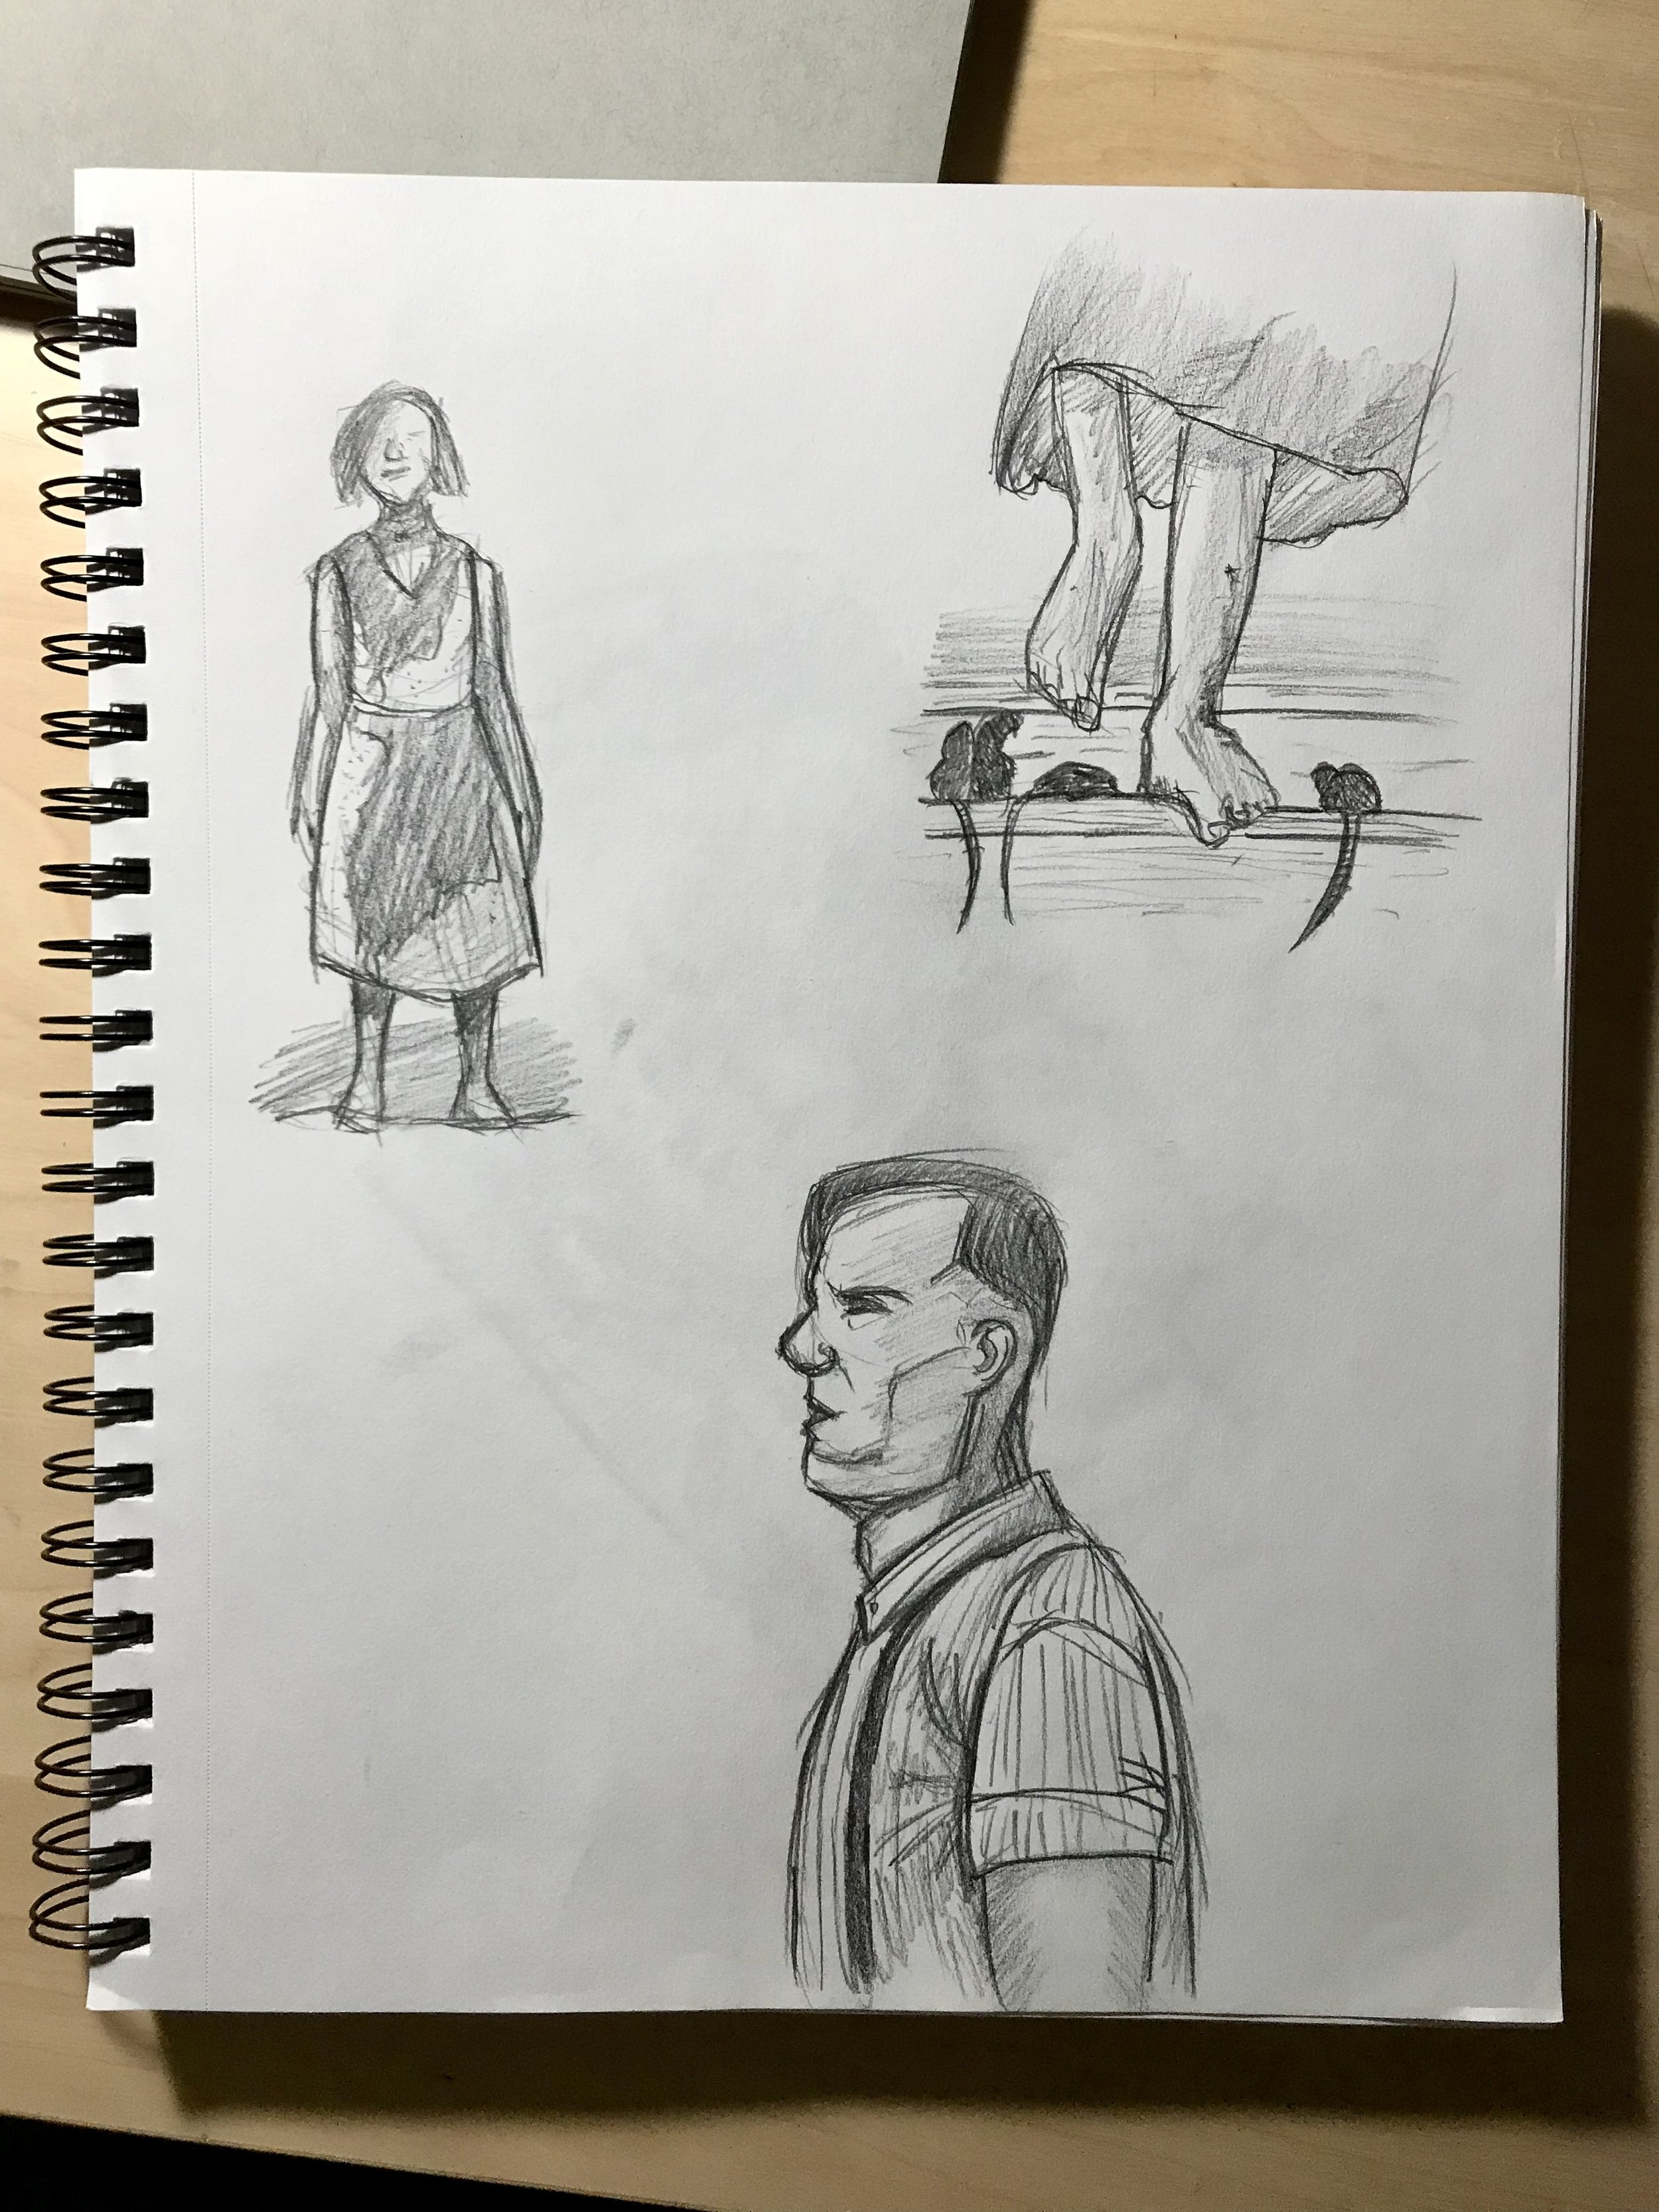 Some quick sketches of different scenes.